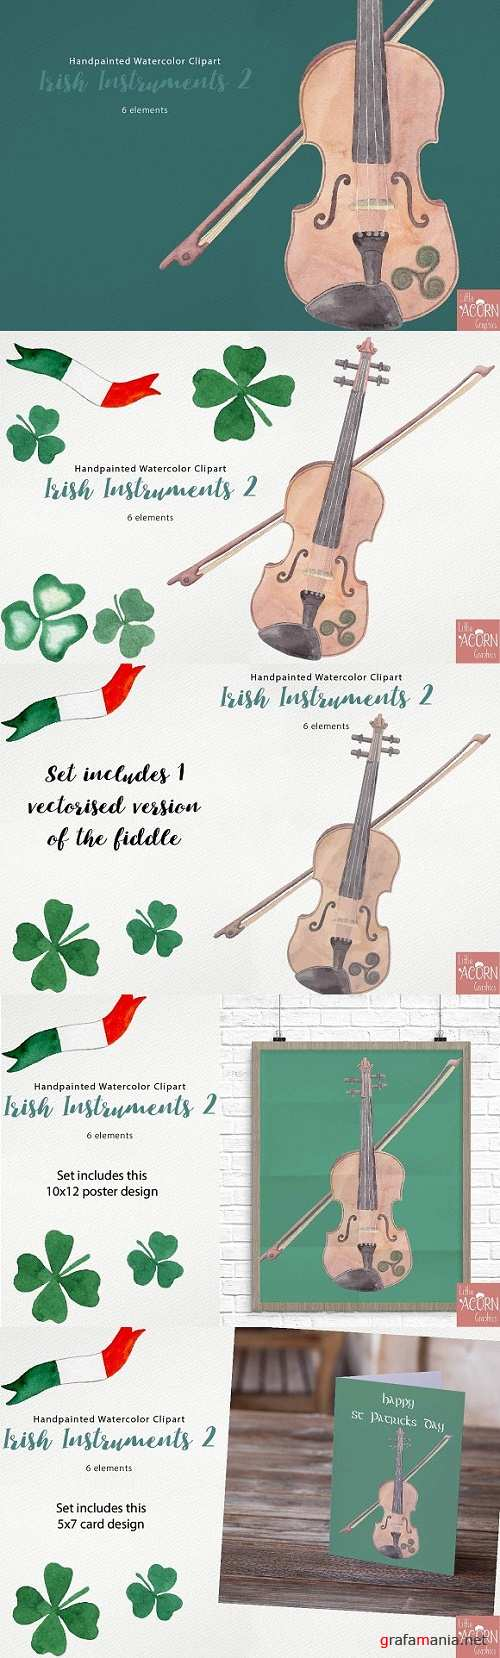 Watercolor Clipart Irish Instruments 2347330